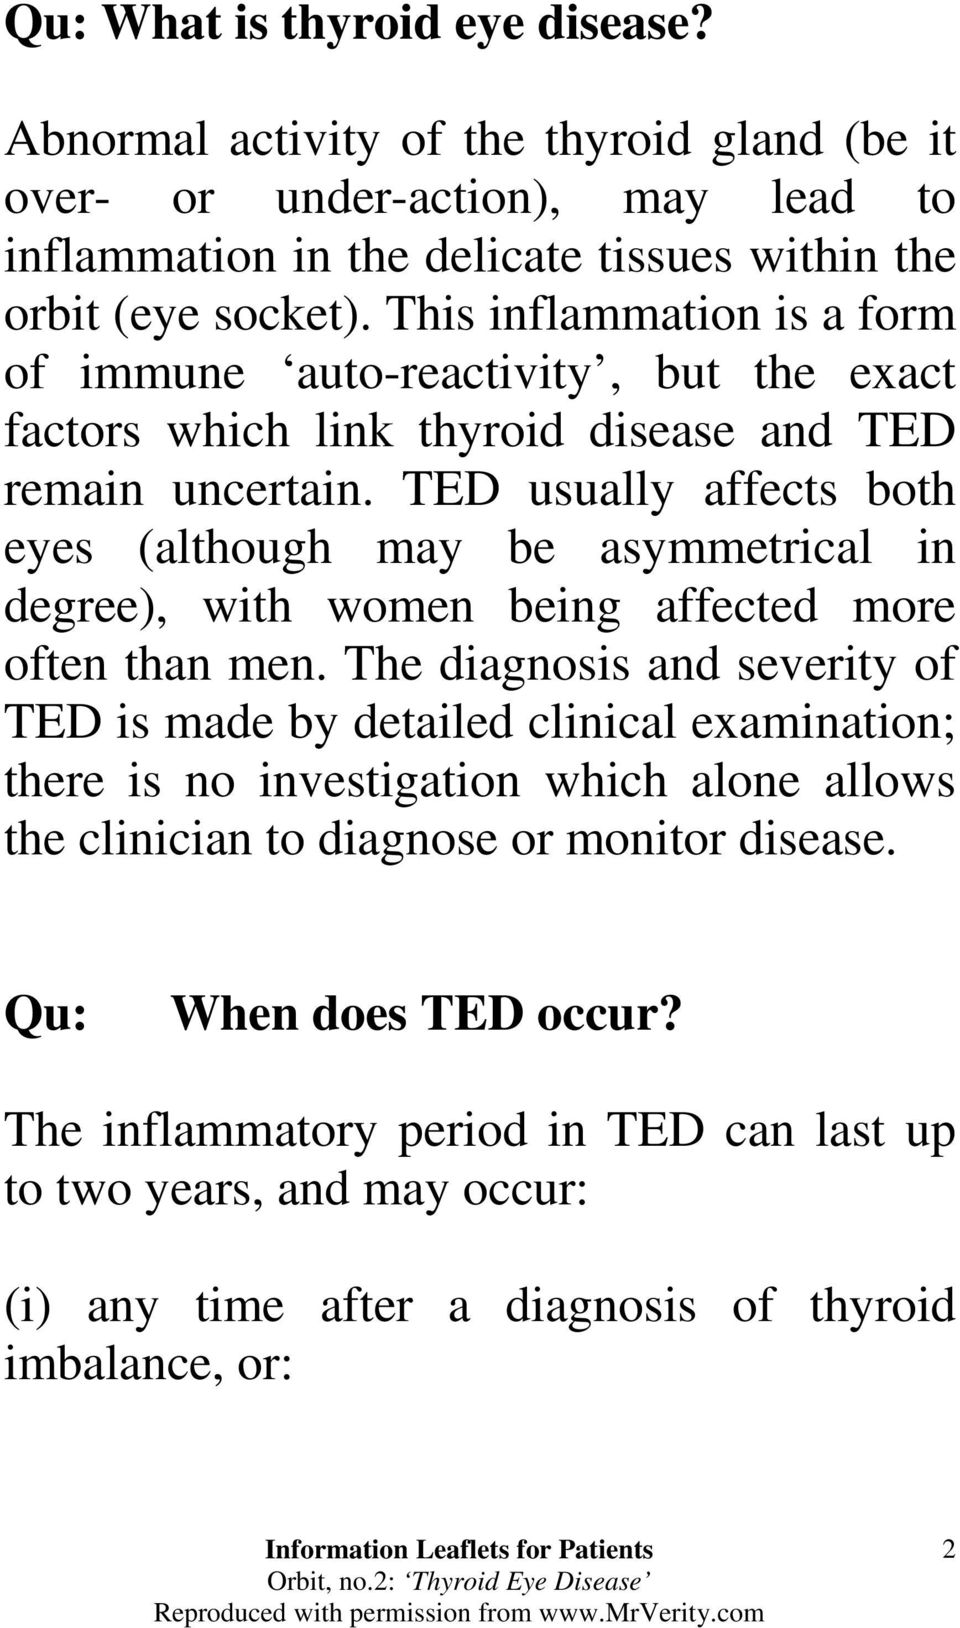 TED usually affects both eyes (although may be asymmetrical in degree), with women being affected more often than men.